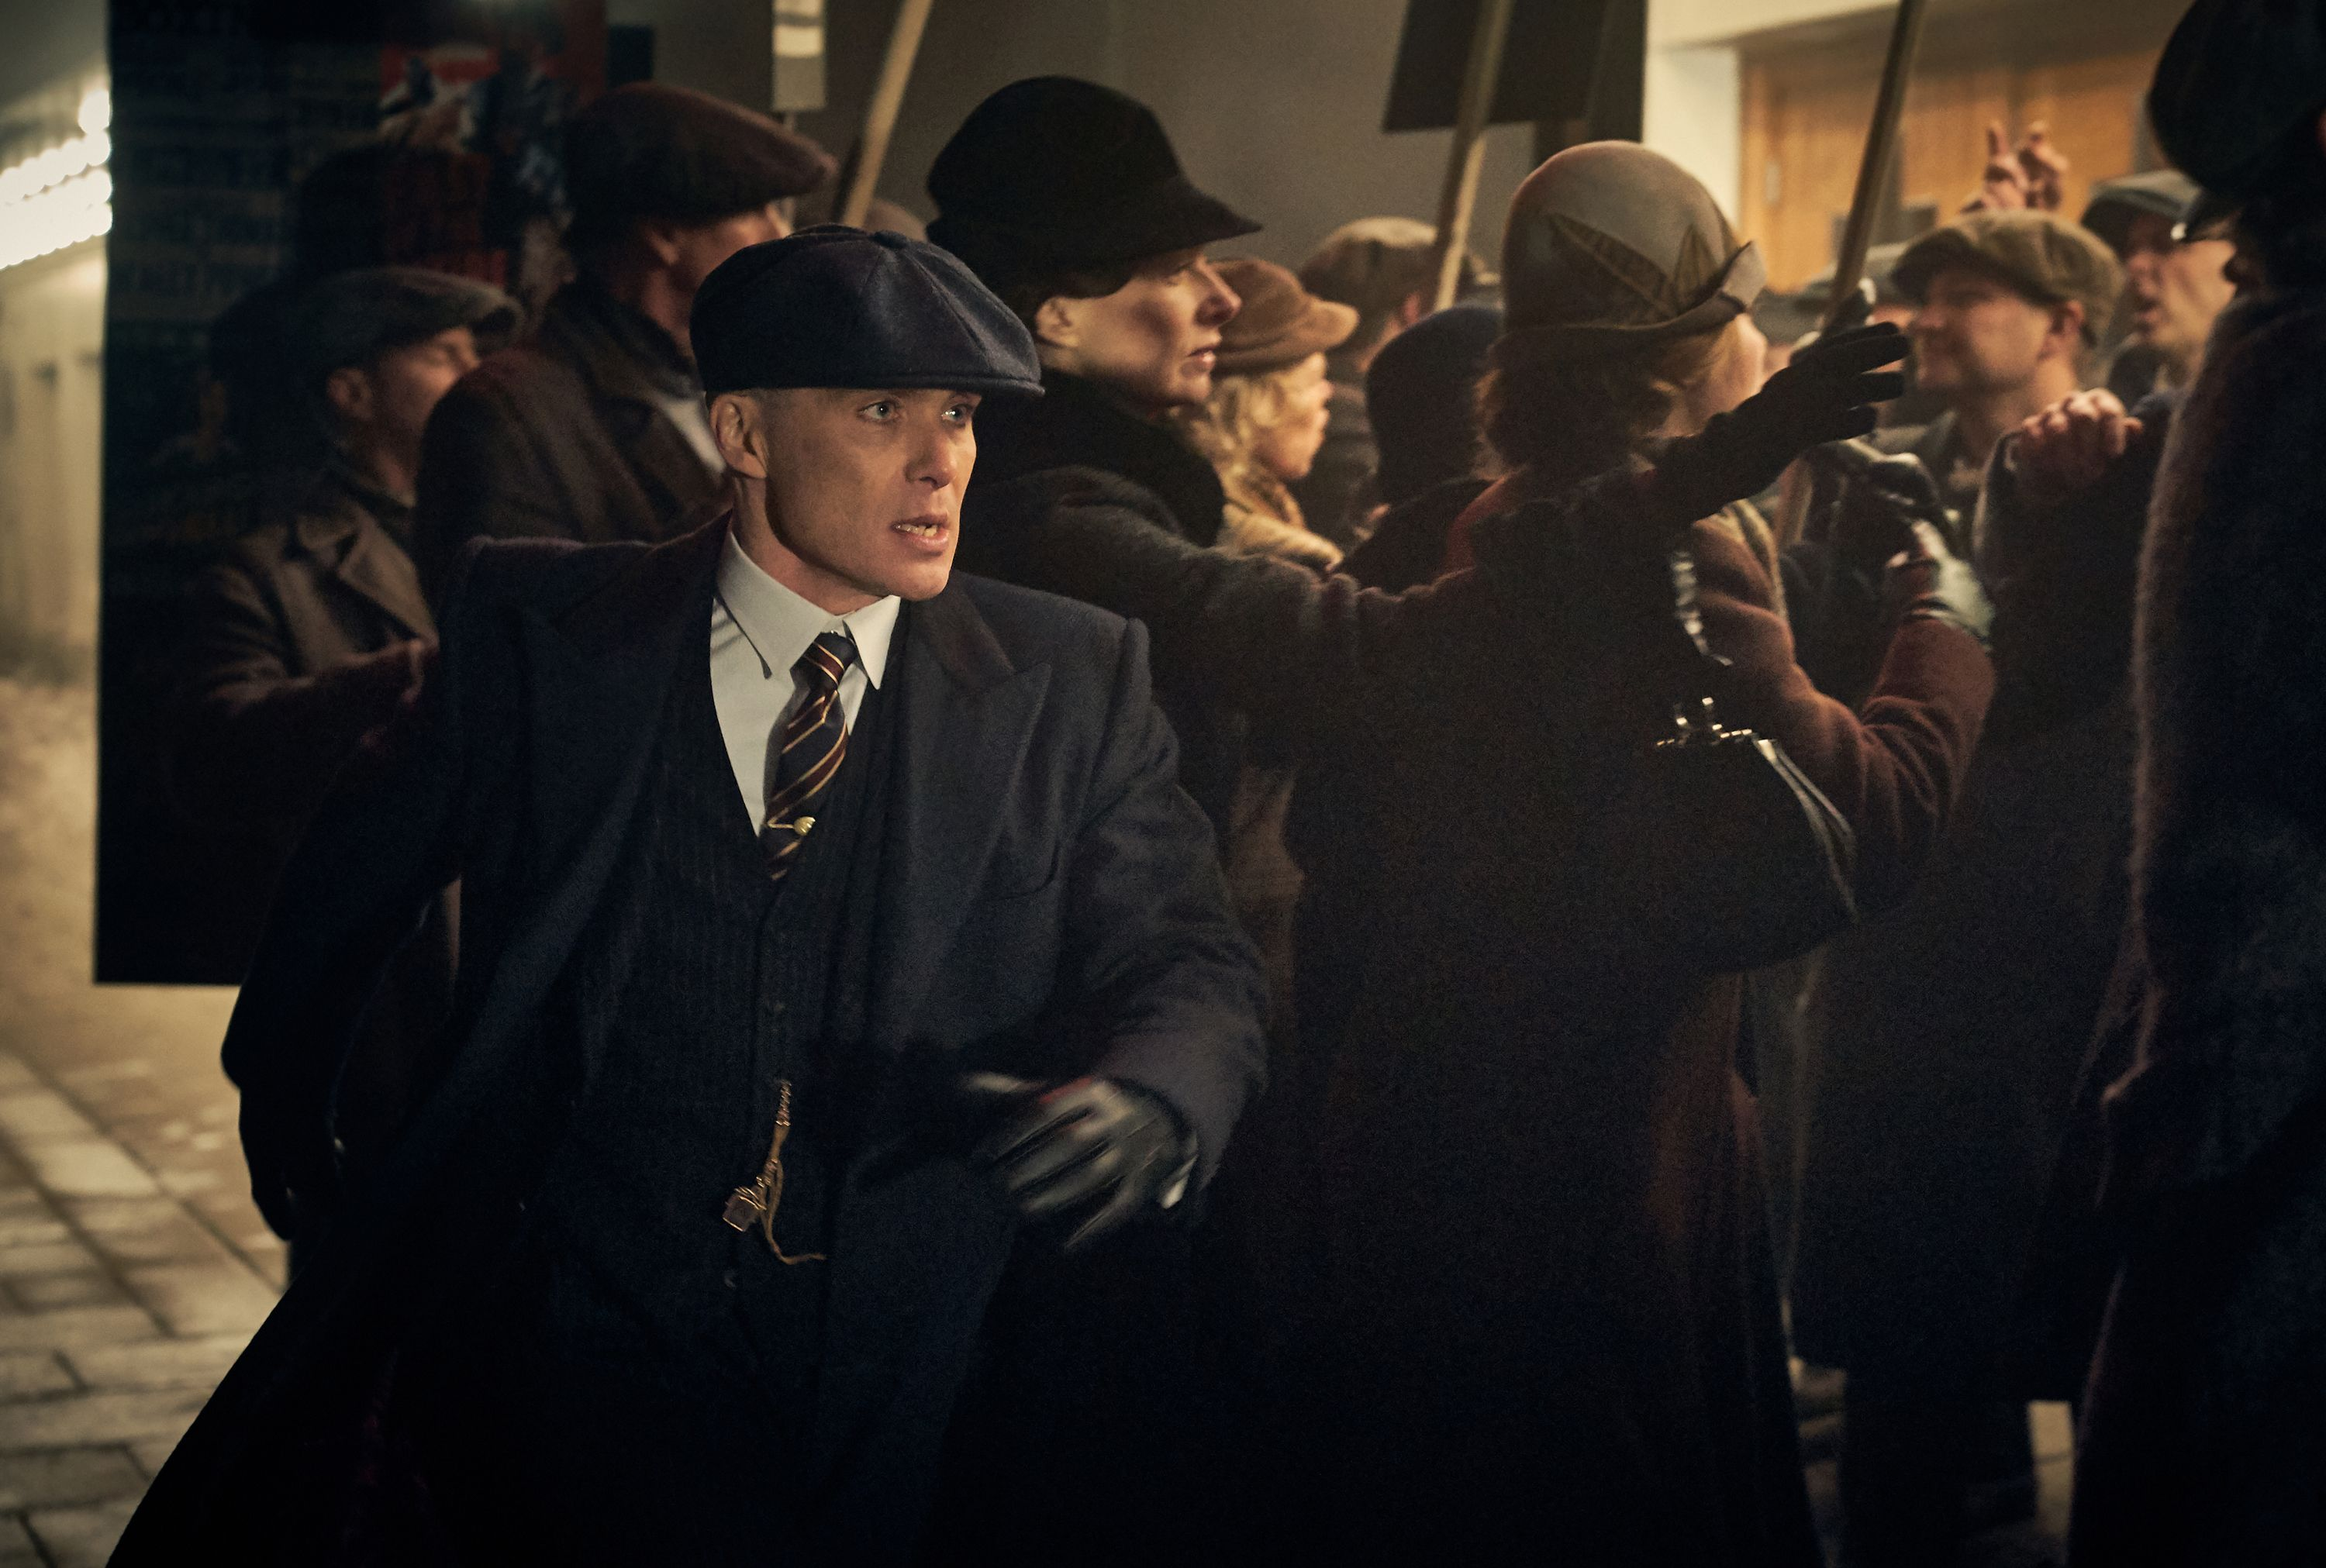 Peaky Blinders Fans Are Freaking Out Over This Shocking Moment From the Season 5 Finale